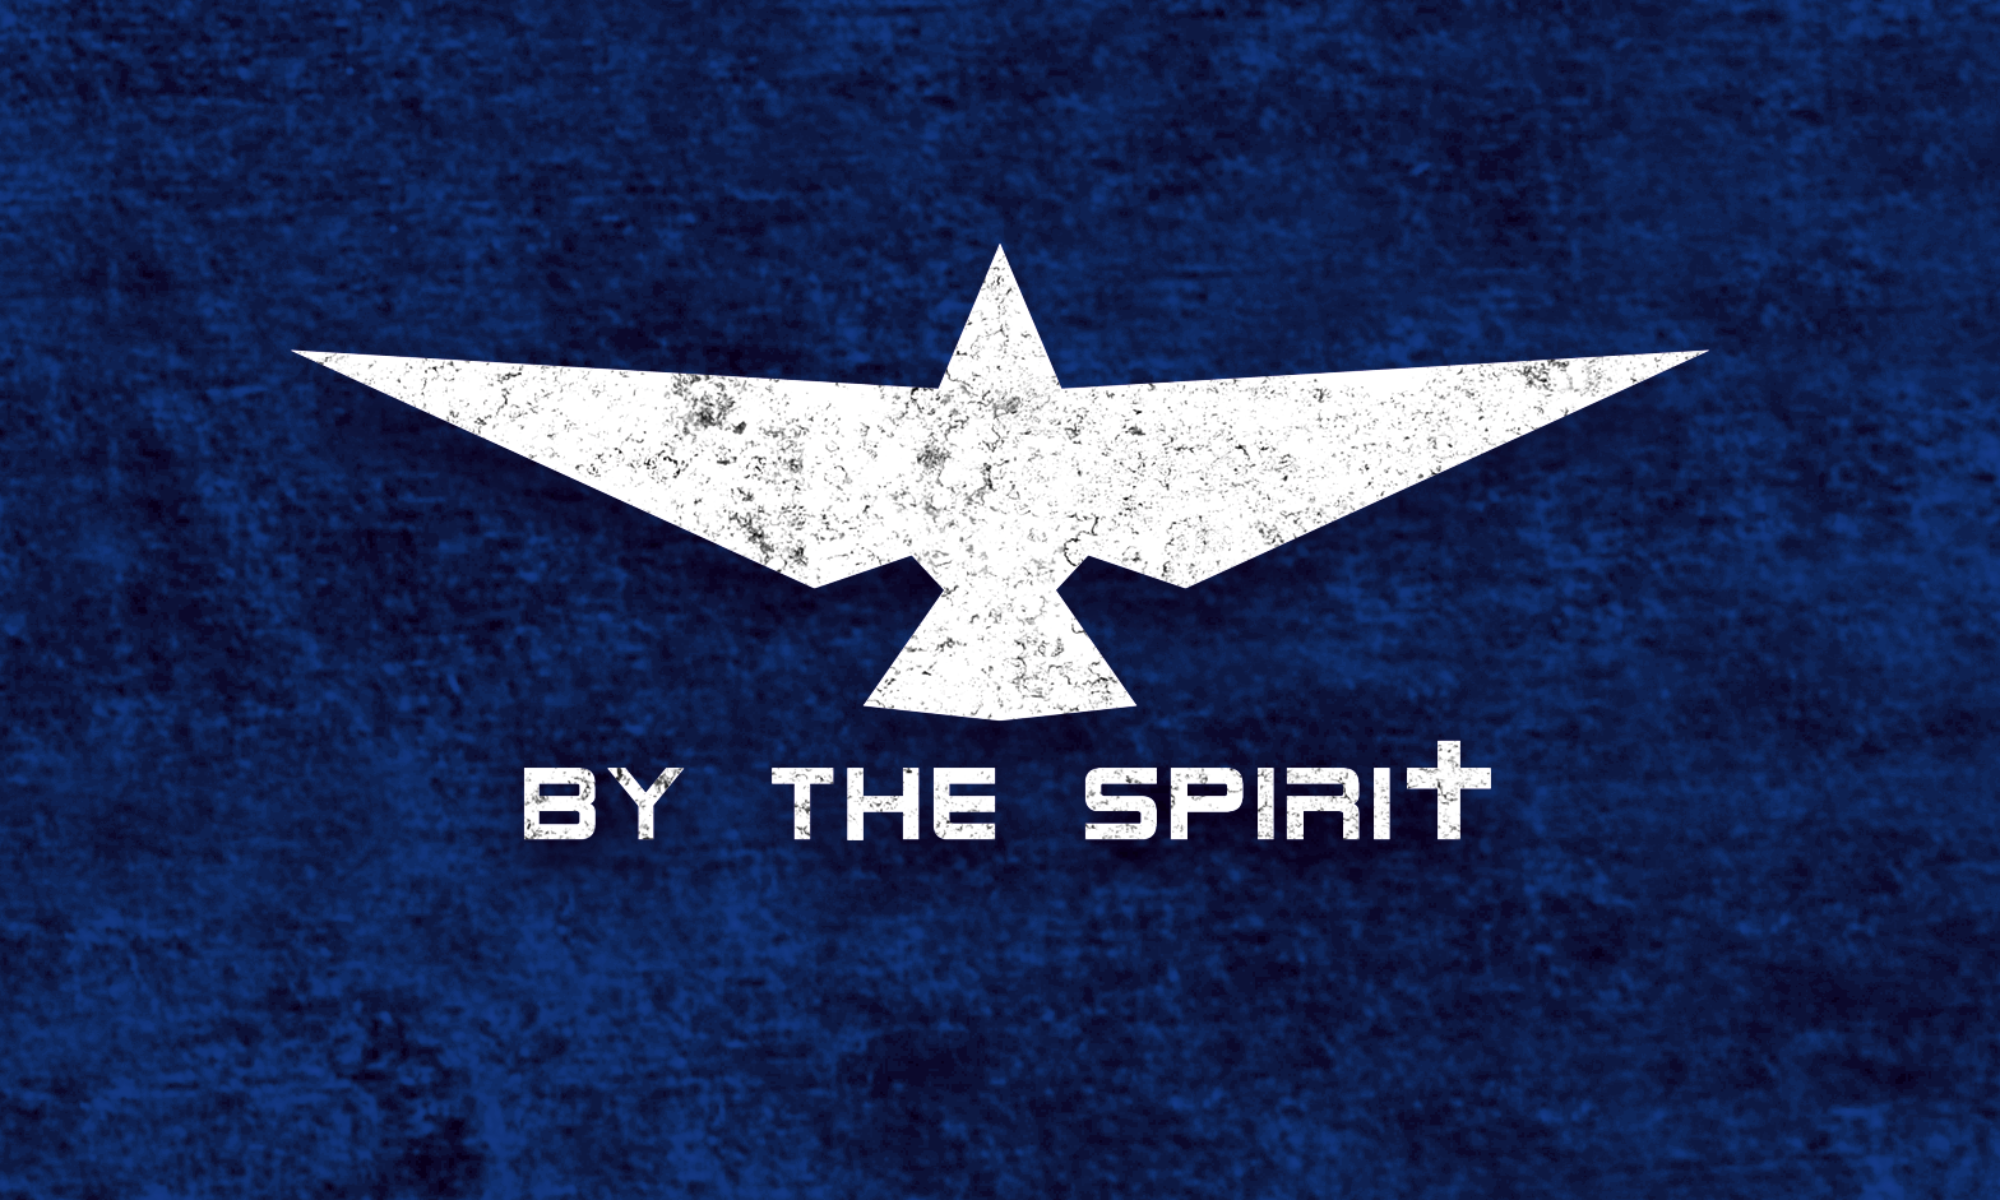 By the Spirit